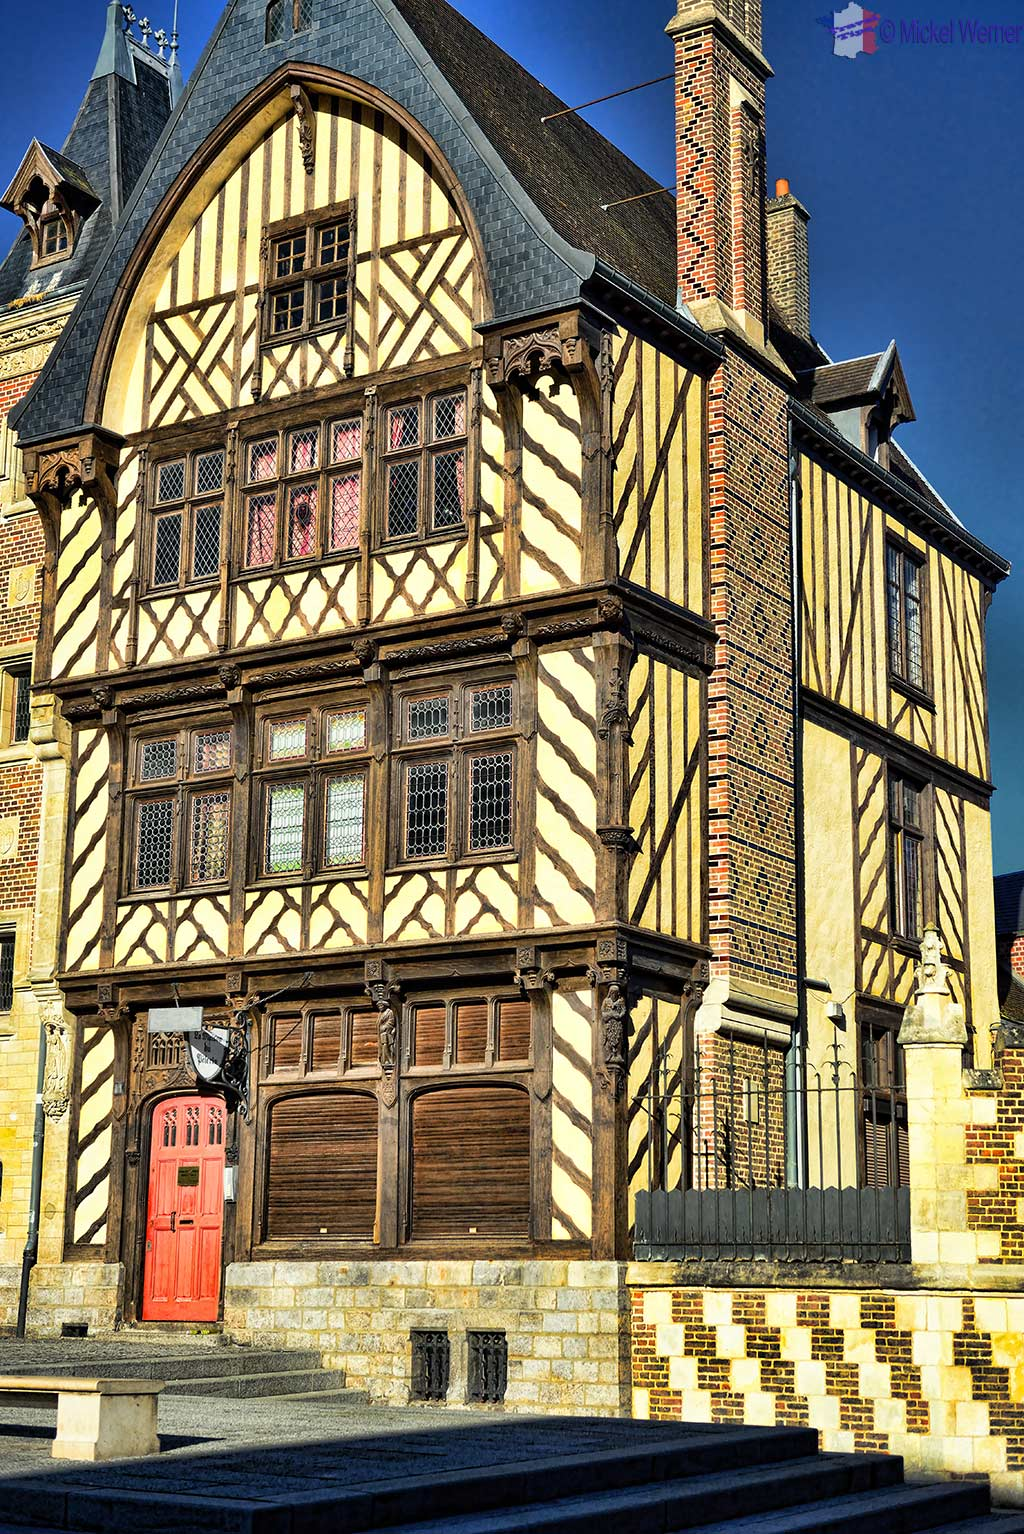 The Maison du Pelerin of Amiens